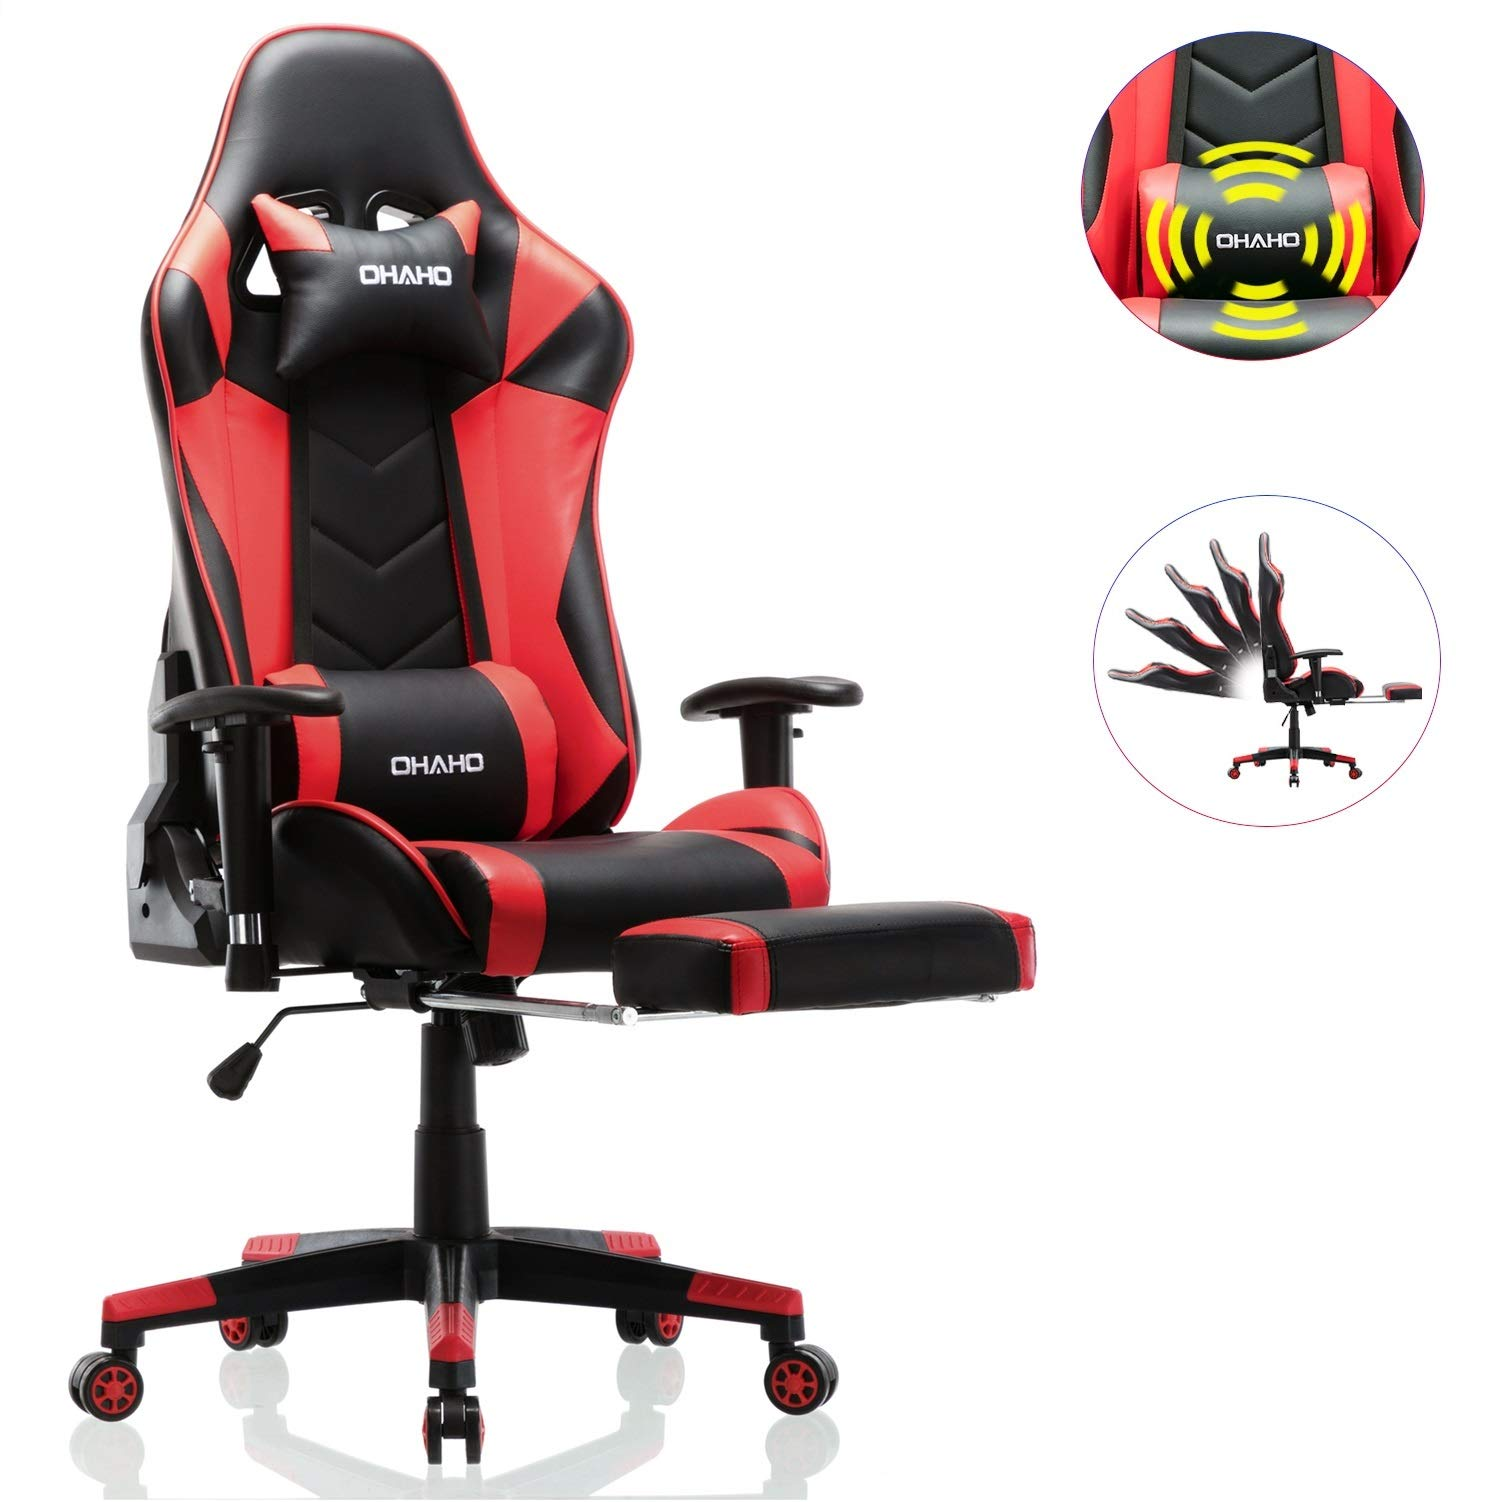 OHAHO Gaming Chair Racing Style Office Chair Adjustable Massage Lumbar Cushion Swivel Rocker Recliner Leather High Back Ergonomic Computer Desk Chair with Retractable Arms and Footrest (Black/Red) by OHAHO